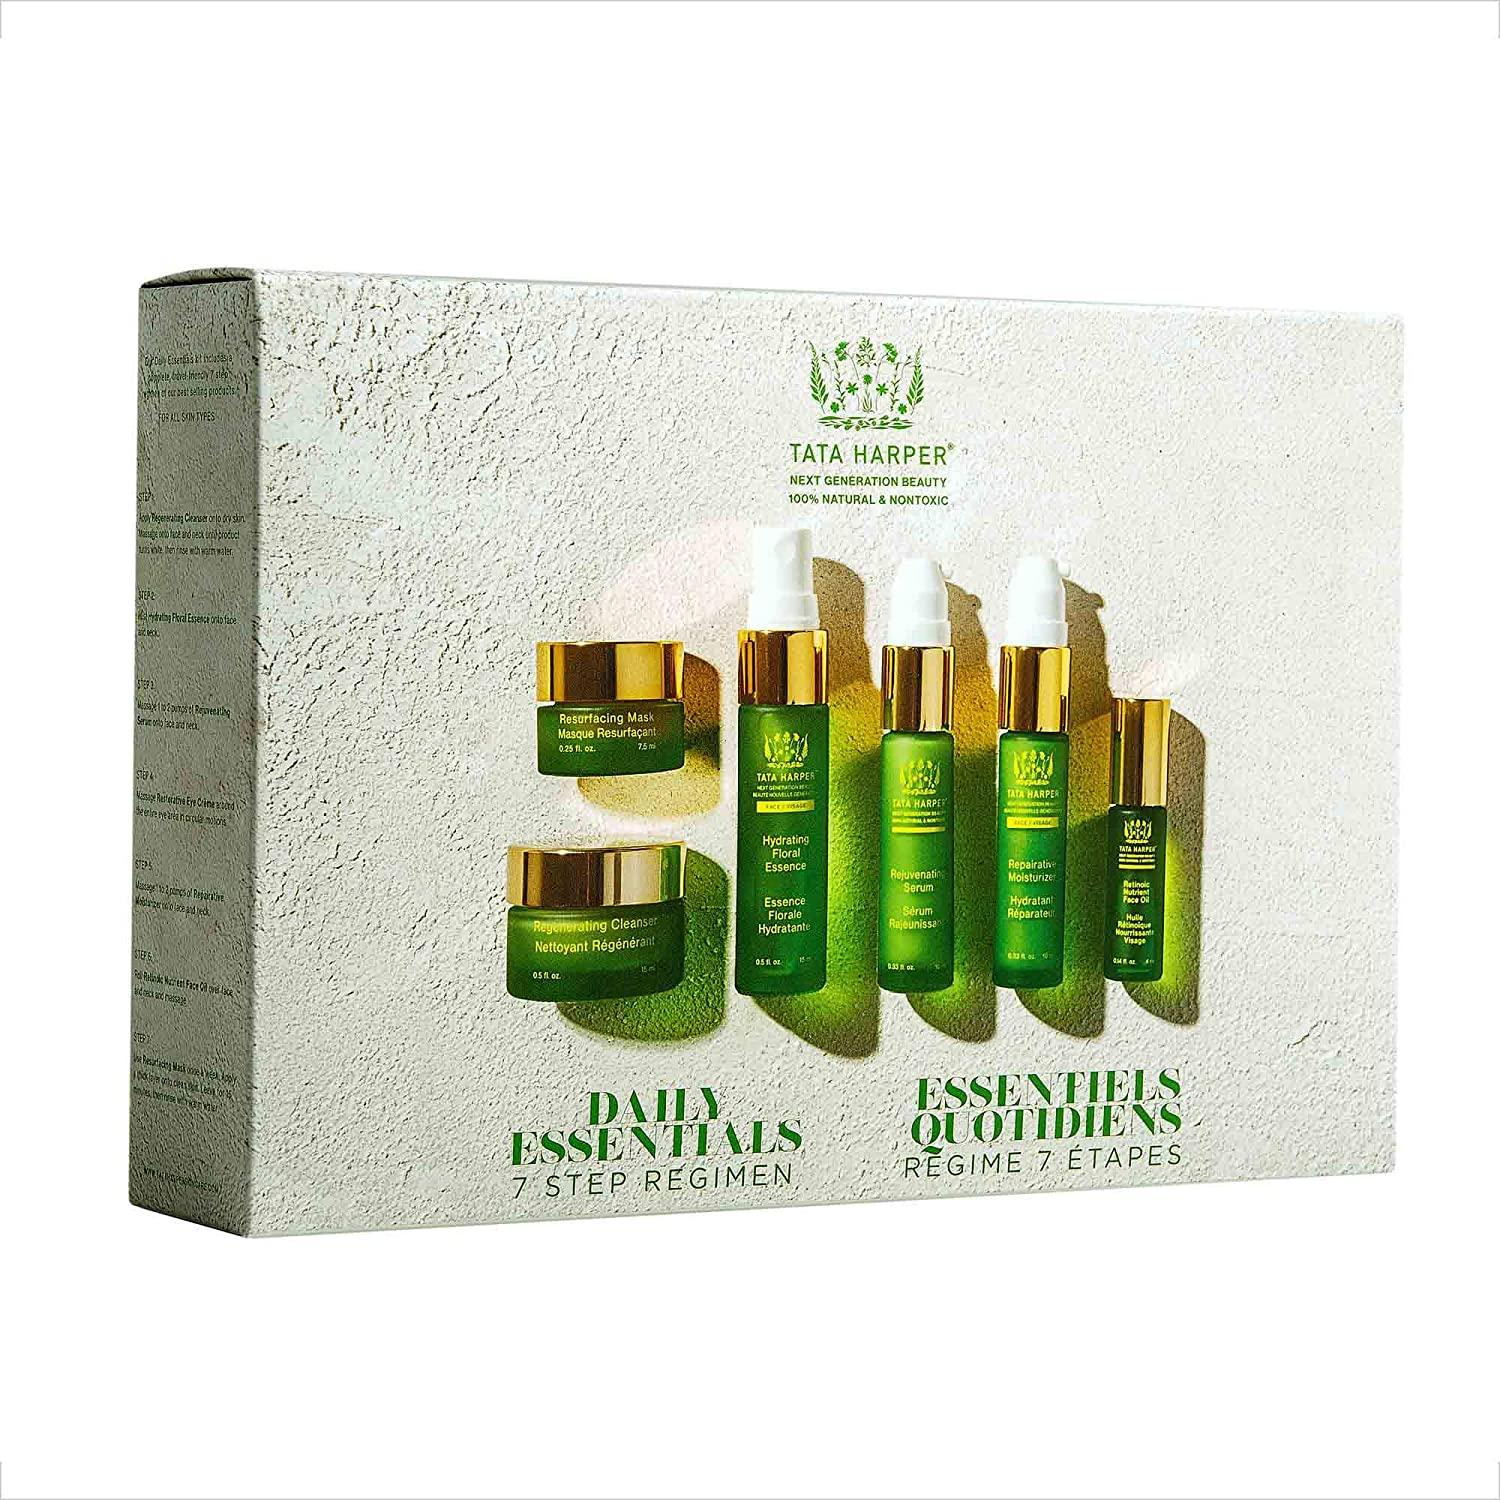 Tata Harper Daily Essentials Set, 6-Step Skincare Starter Regimen, 100% Natural, Made Fresh in Vermont, $75 @amazon.com